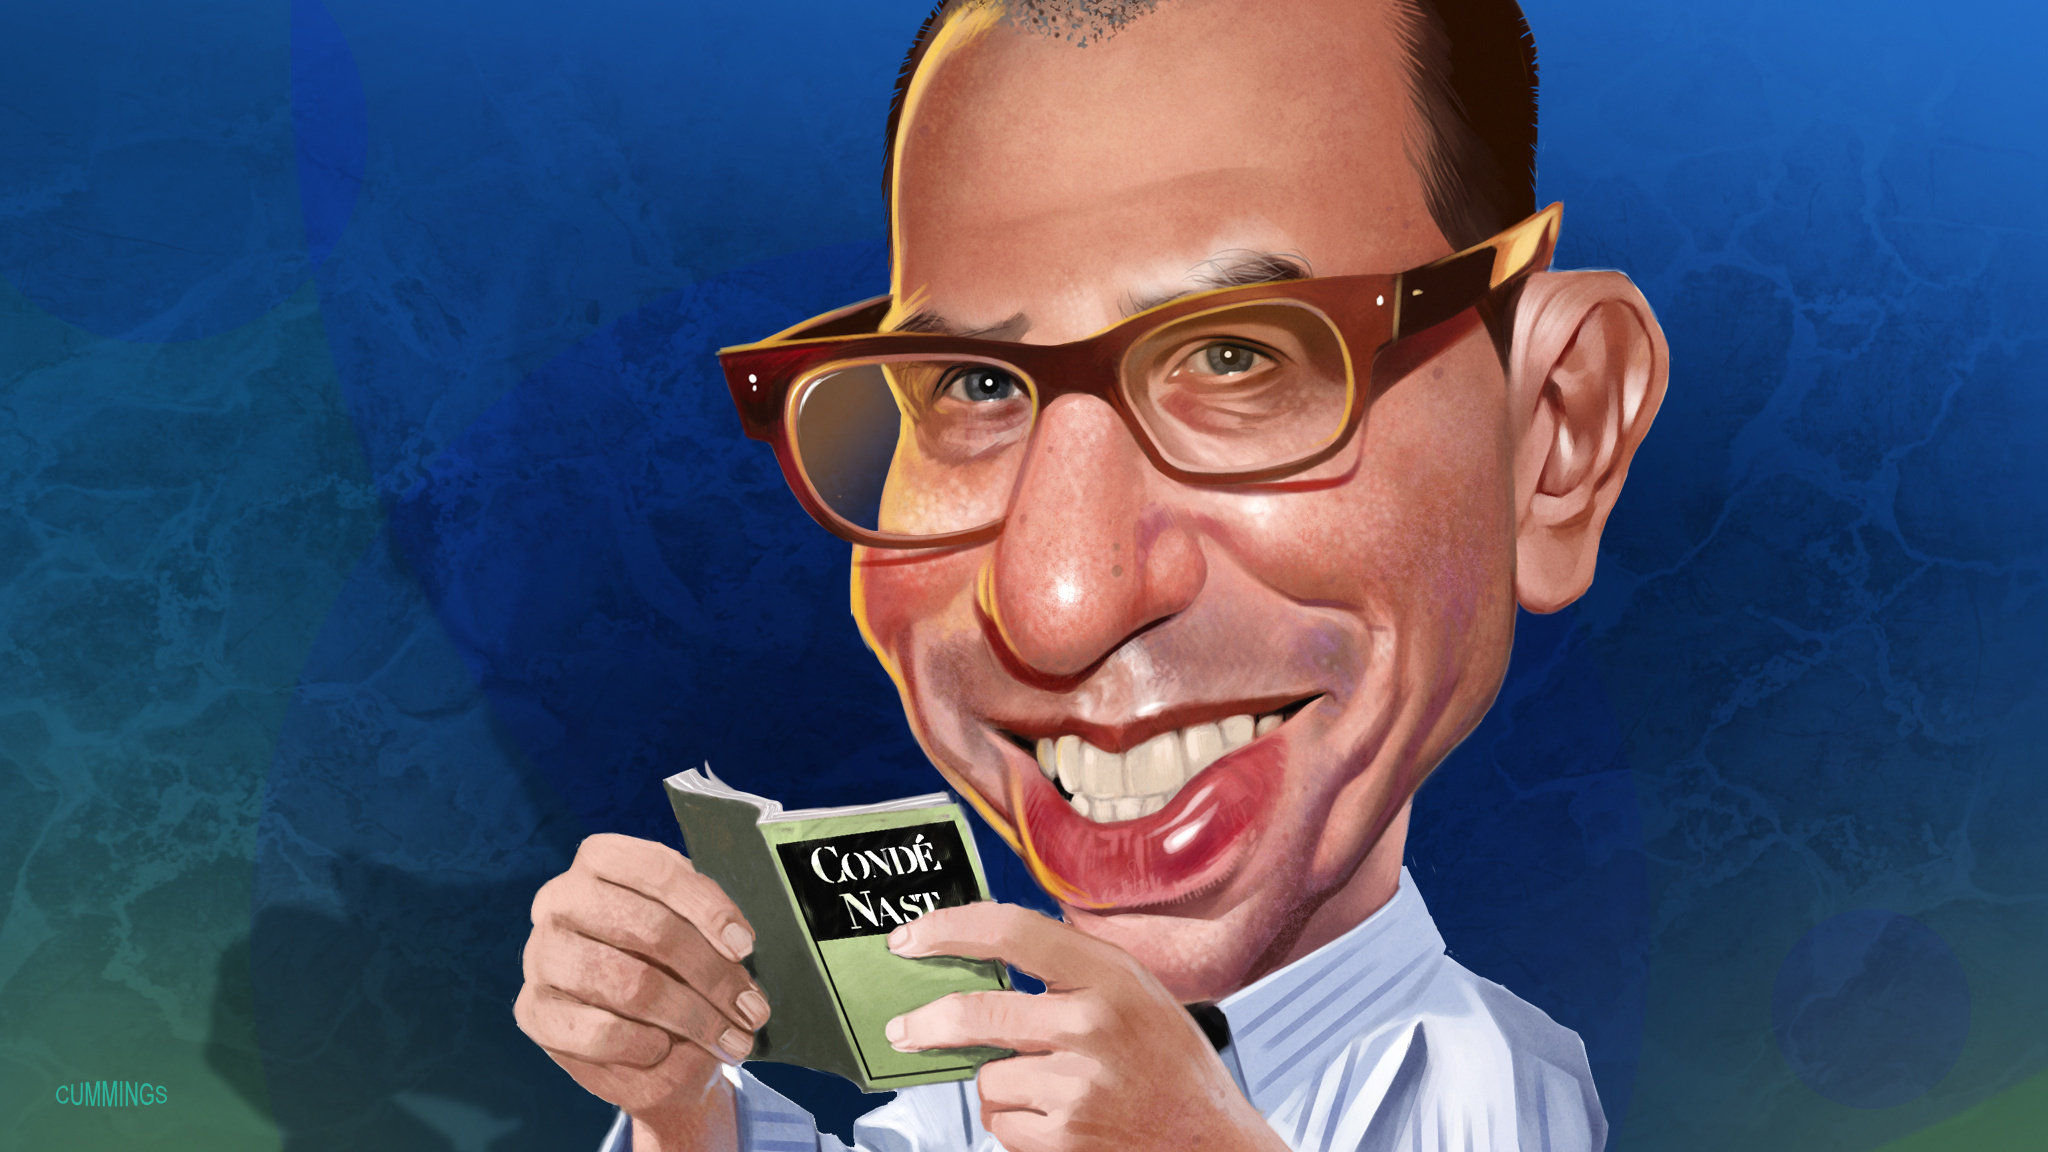 Jonathan Newhouse A Sweet Billionaire Shows His Mettle Financial Times